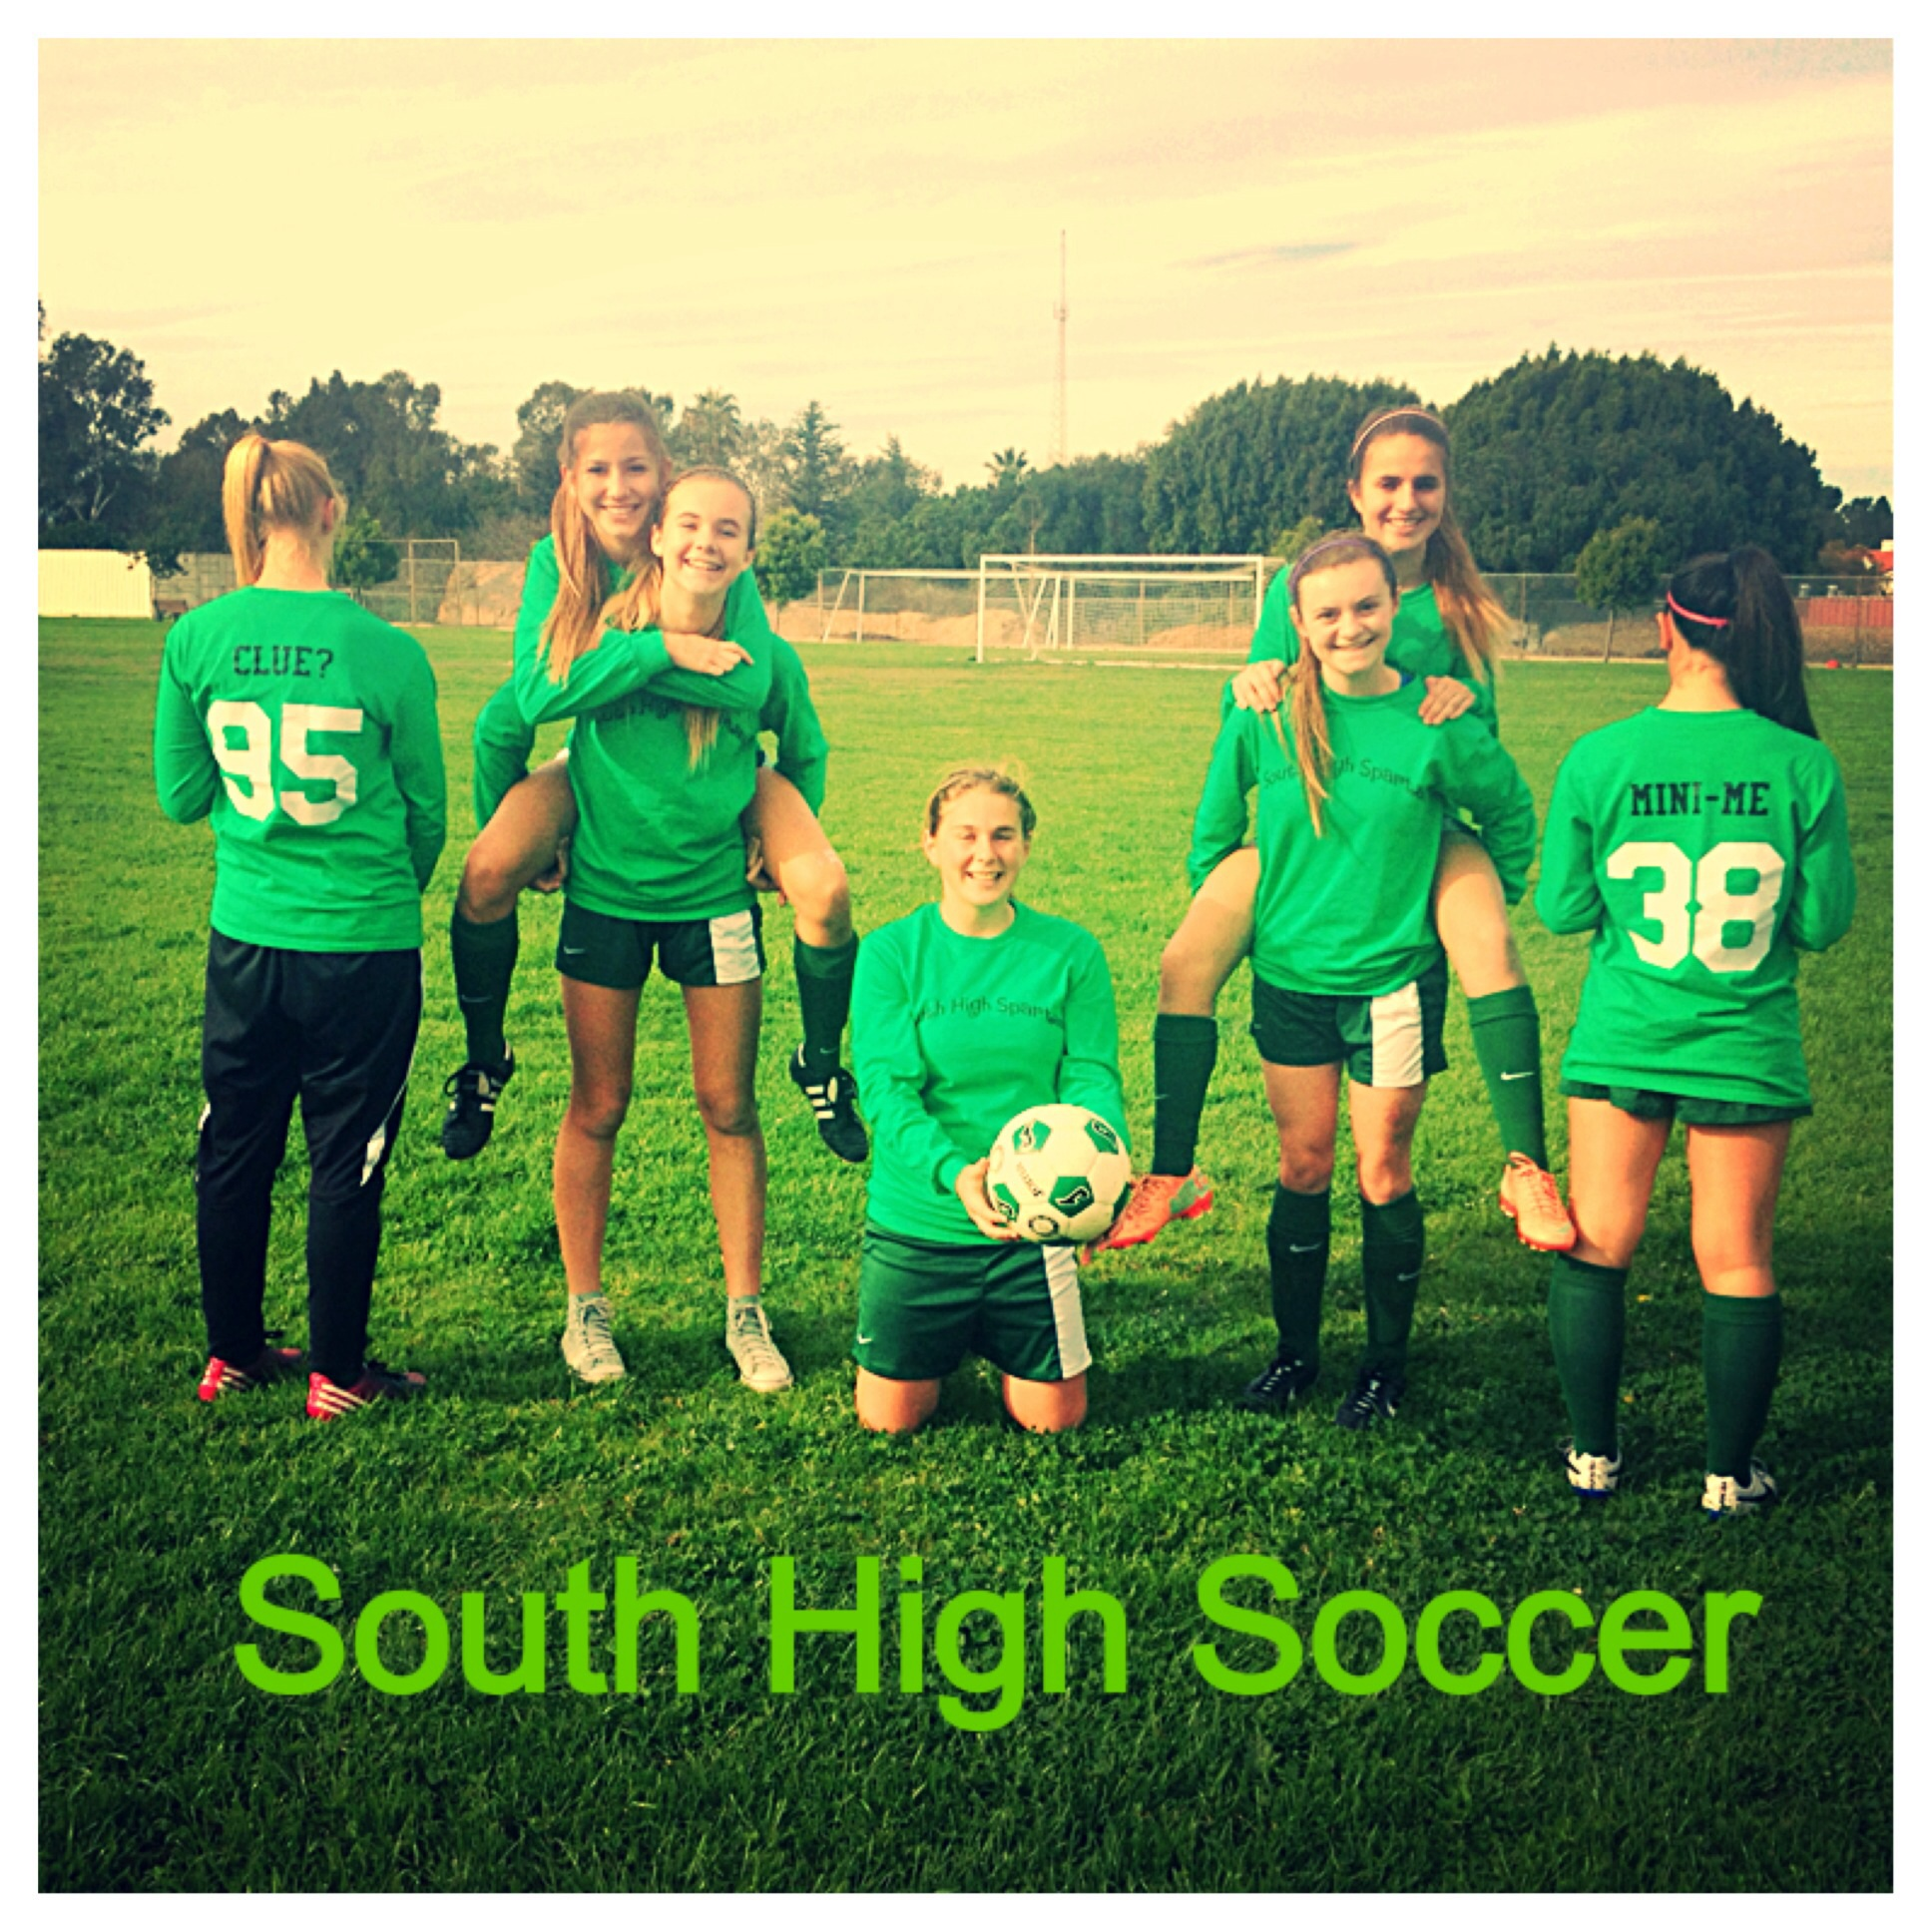 south high soccer t shirt photo - Soccer T Shirt Design Ideas